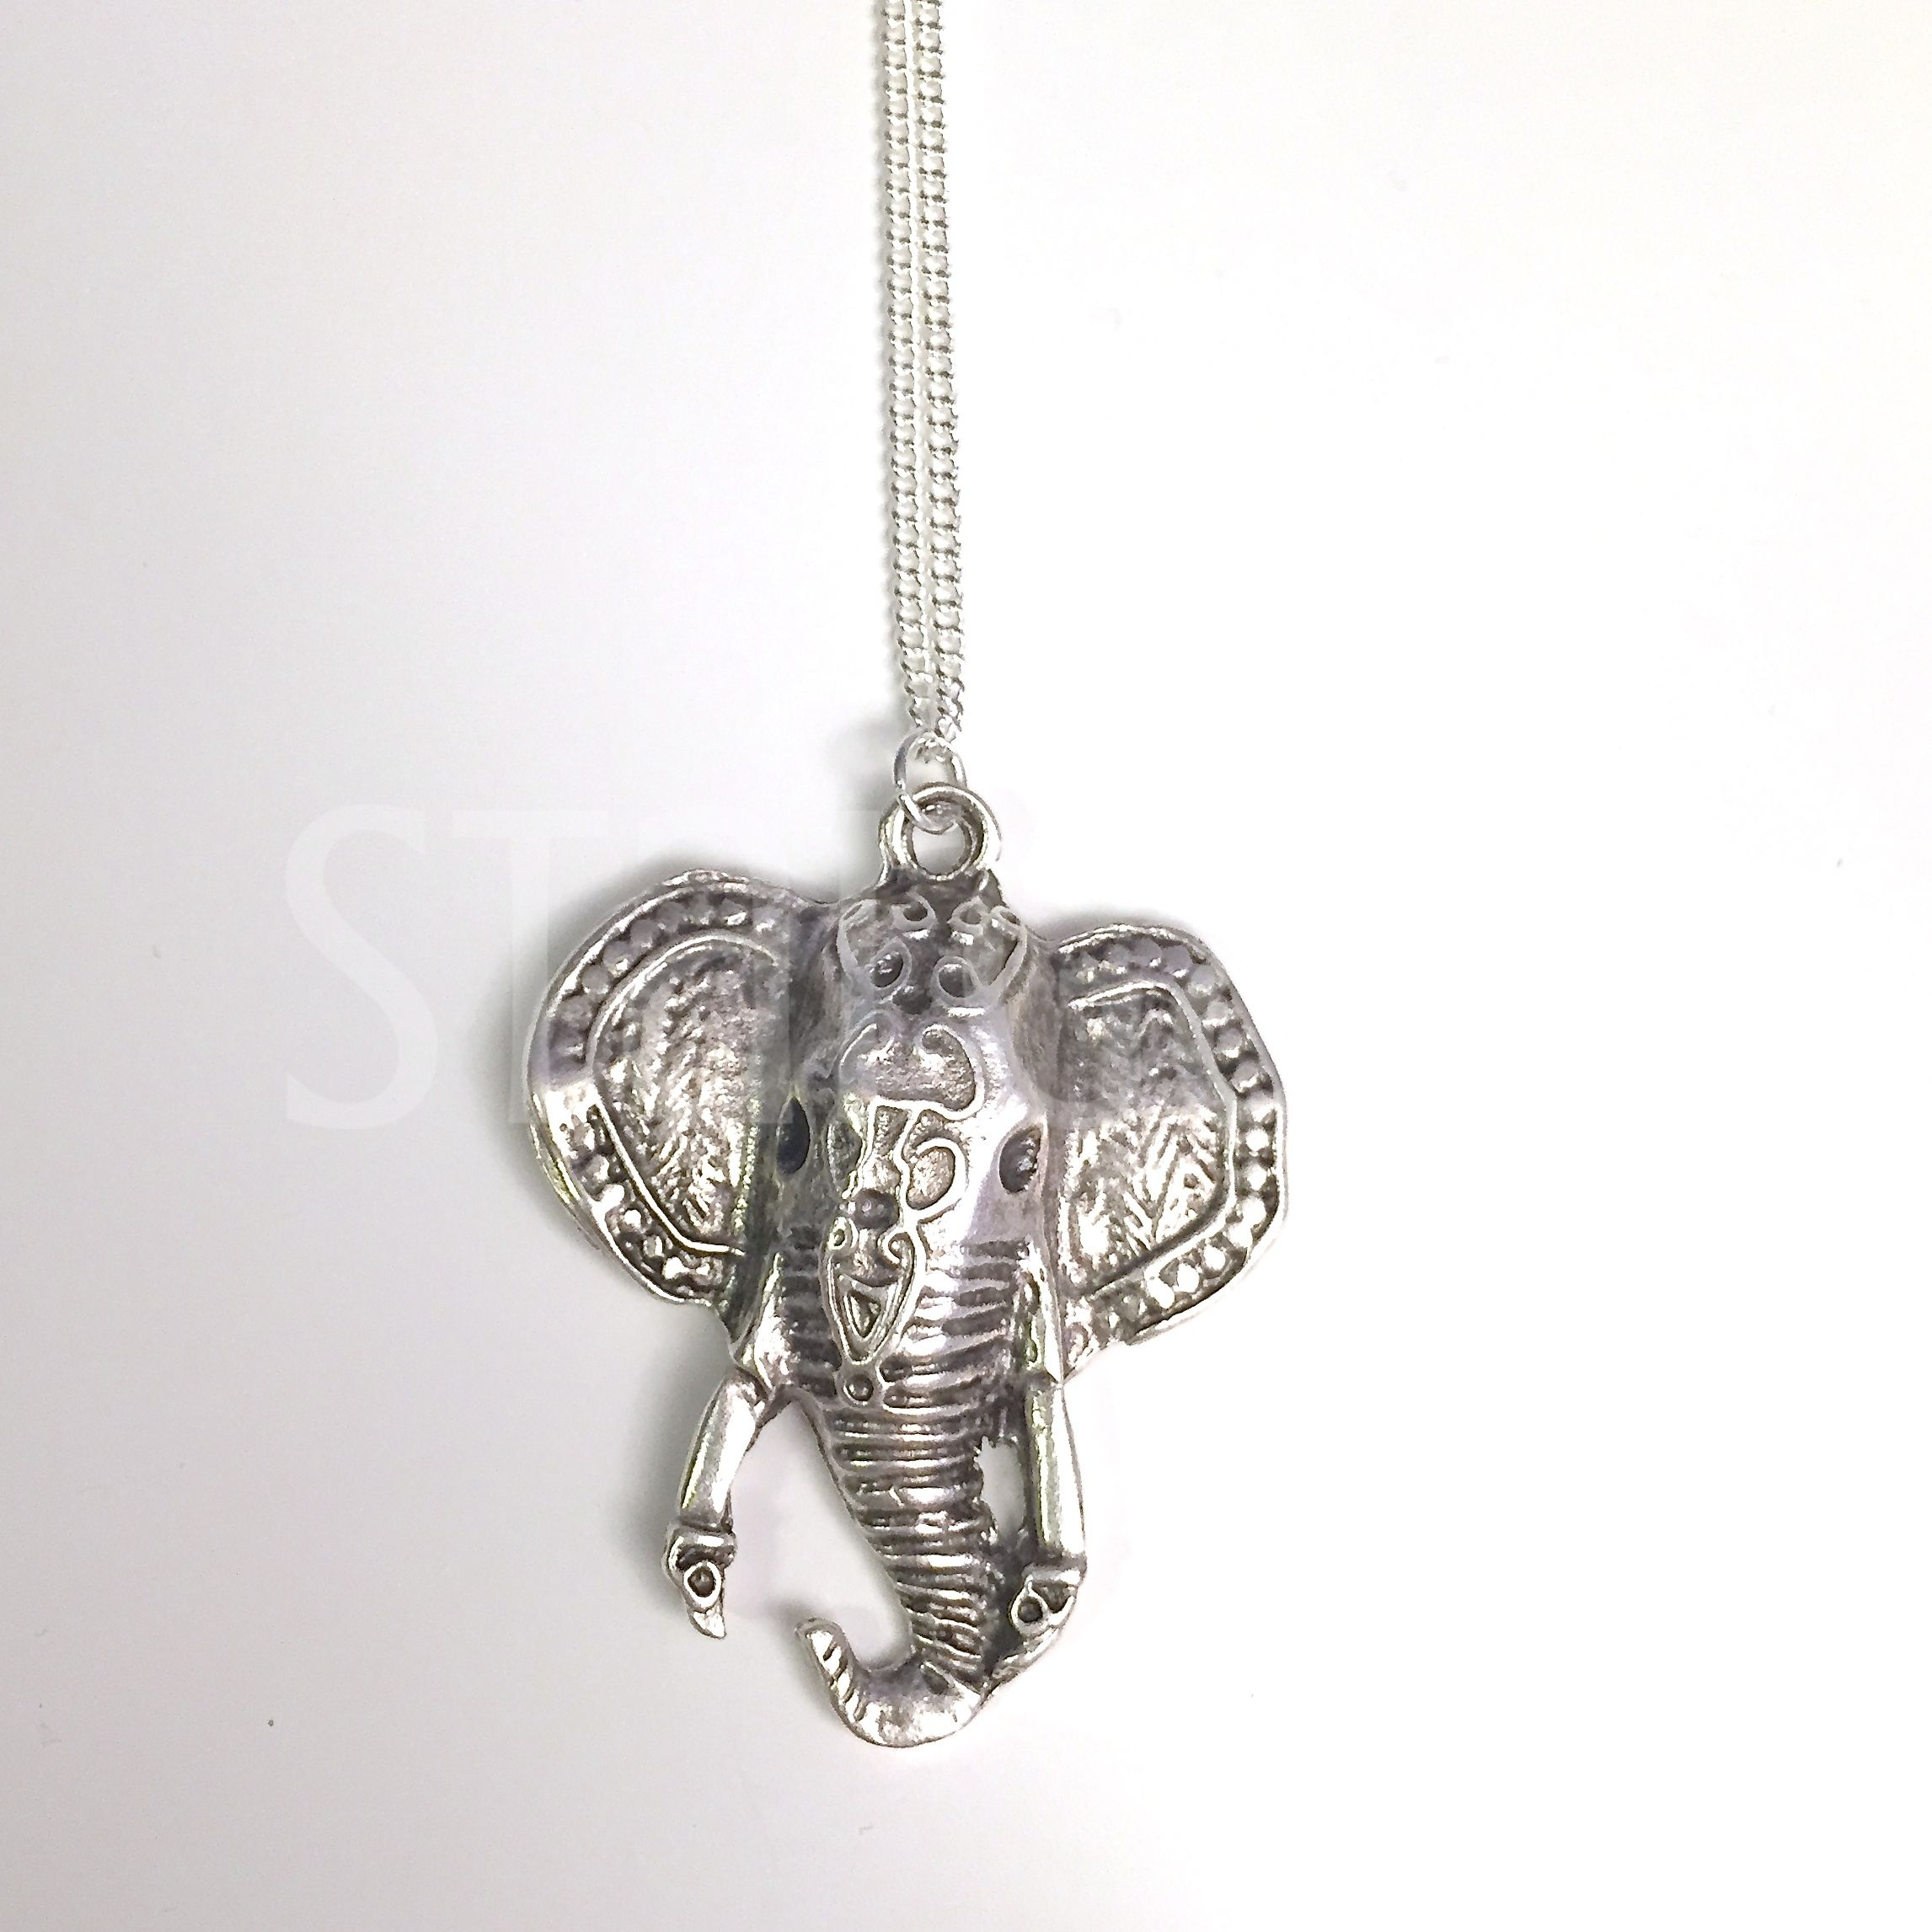 image tsus small en product necklace topshop elephant carousel large